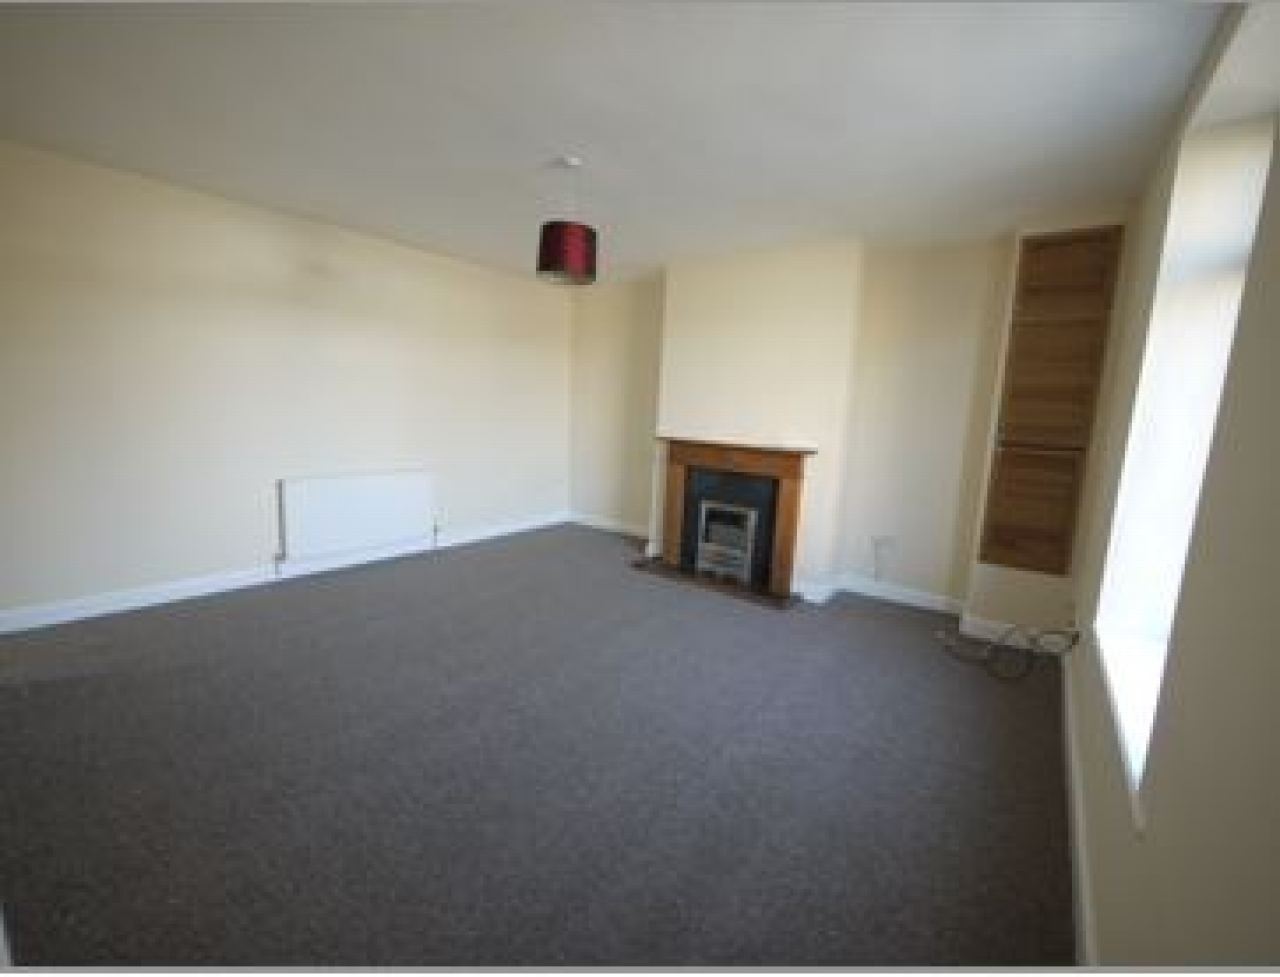 2 bedroom barn conversion house Let in Hudderfield - Photograph 2.